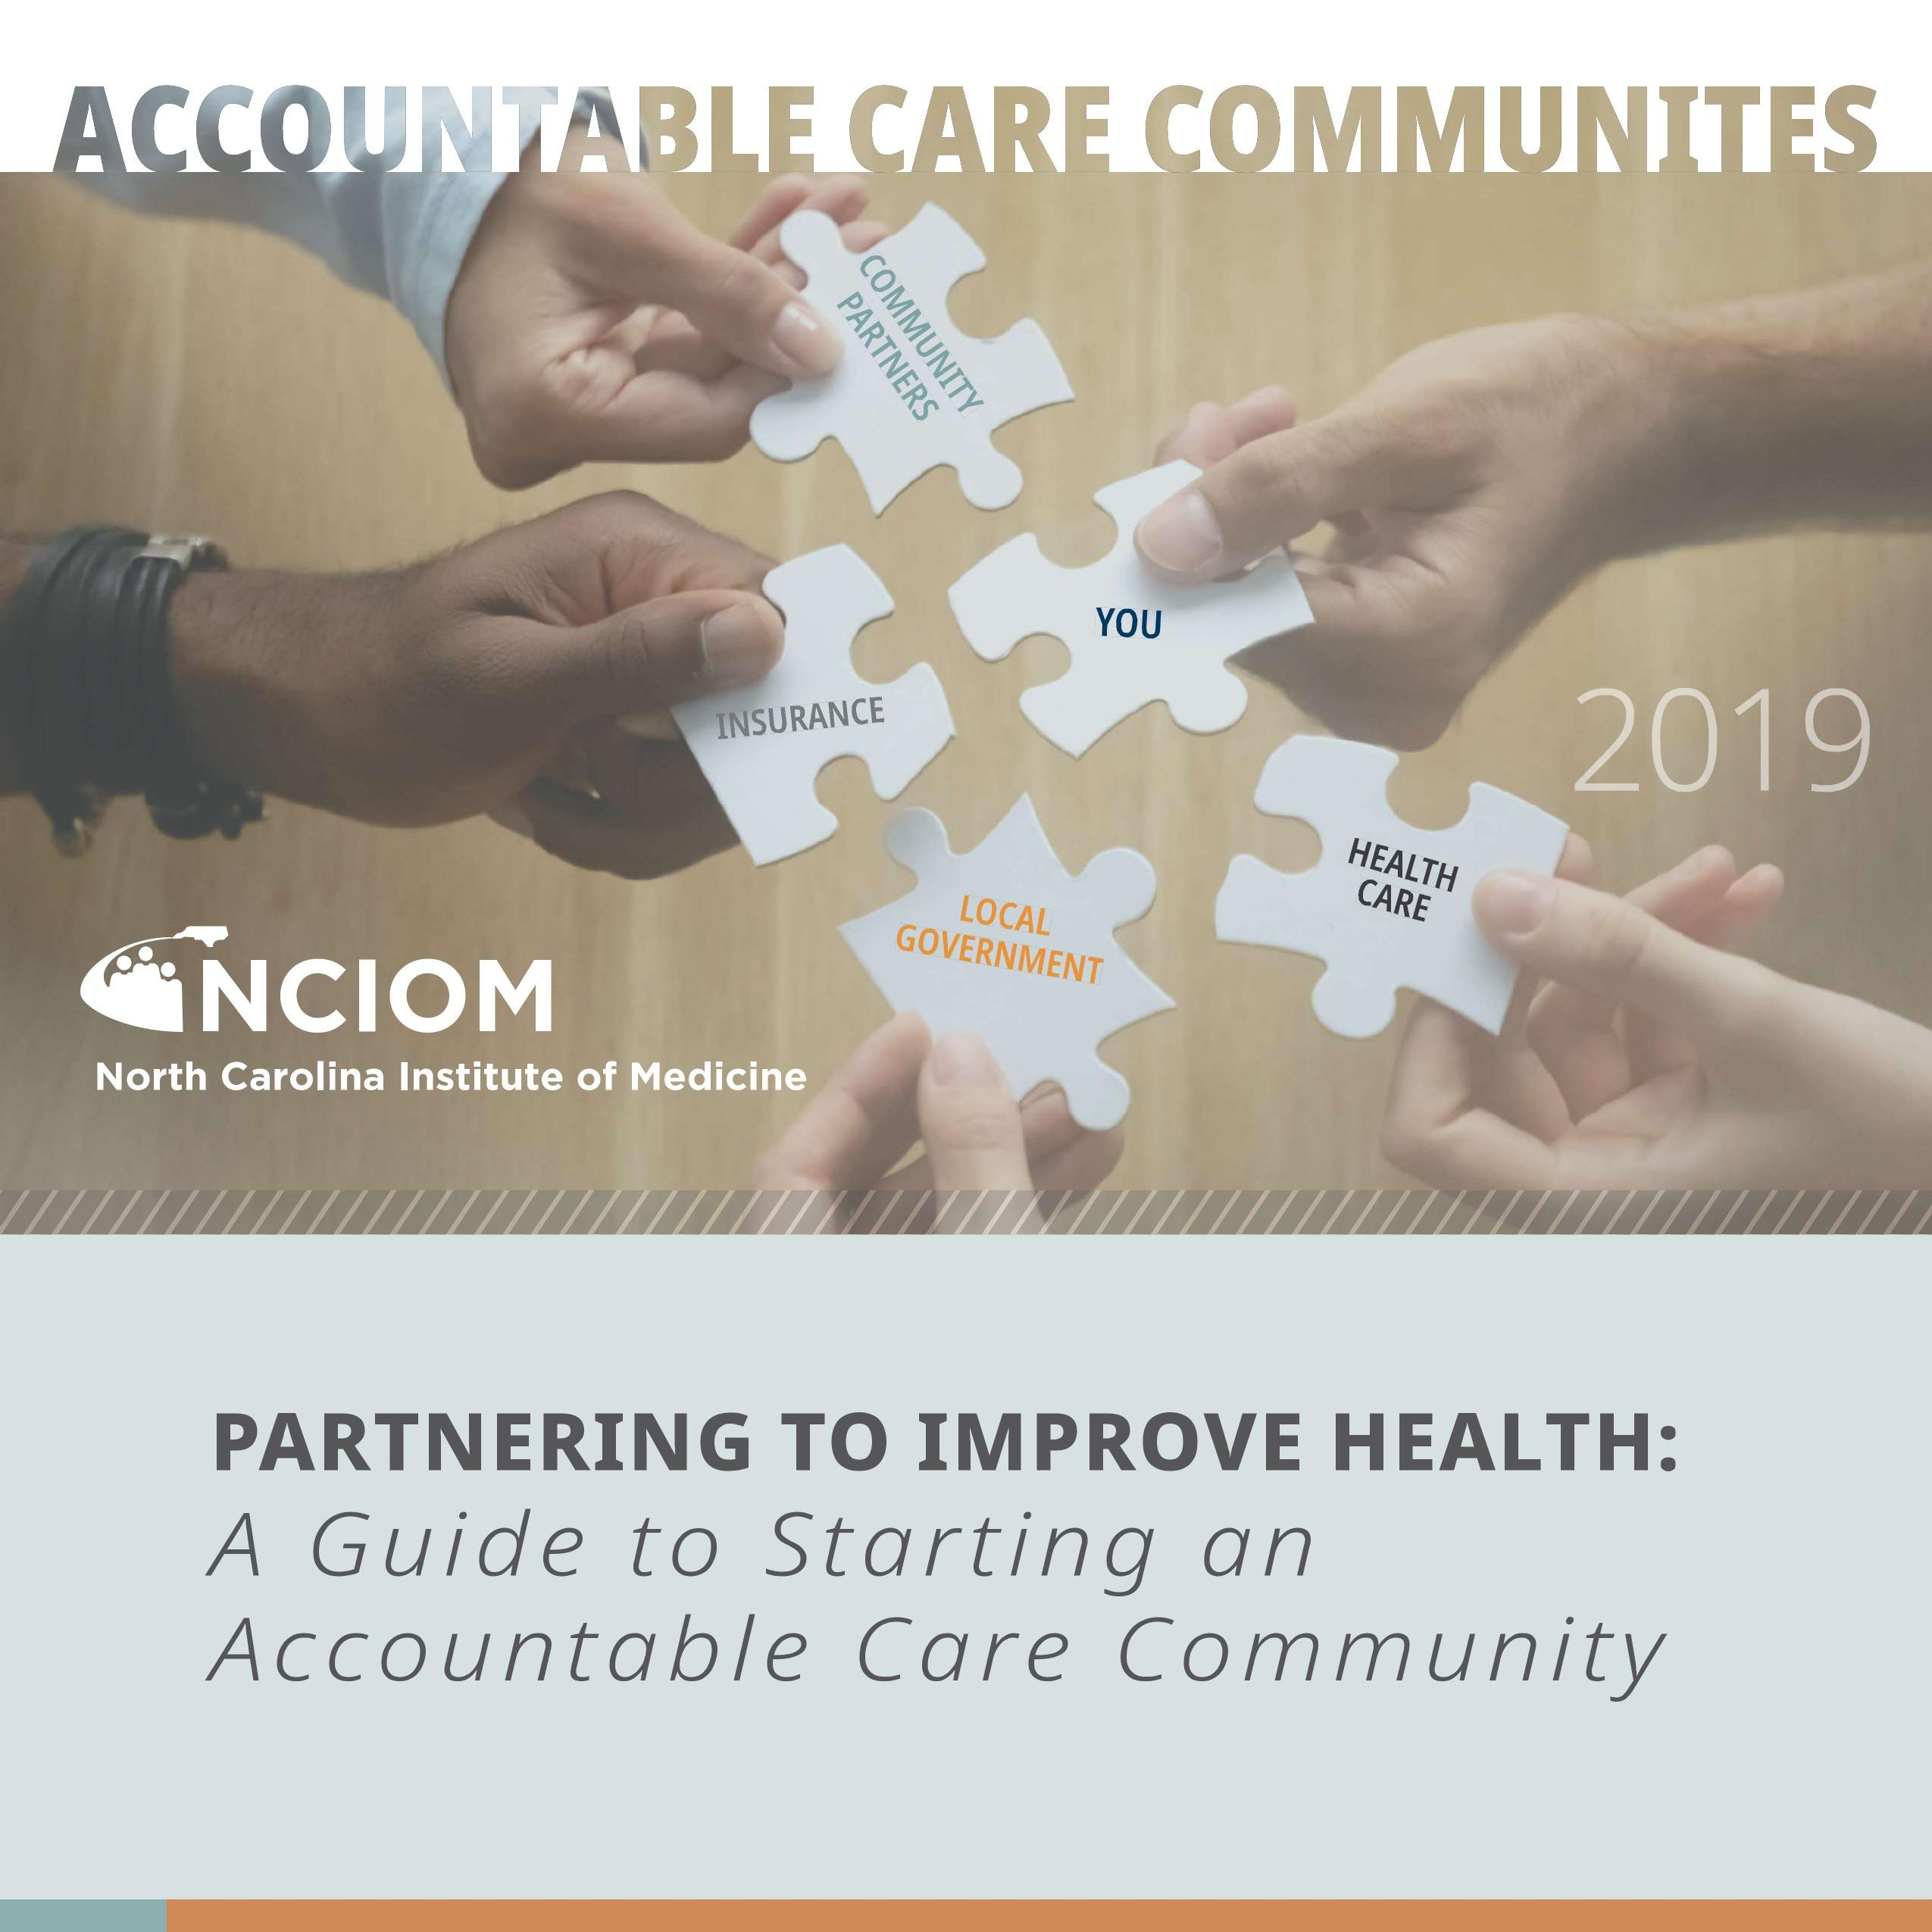 cover of accountable care community guide - partnering to improve health. five hands, each holding a white puzzle piece coming together.